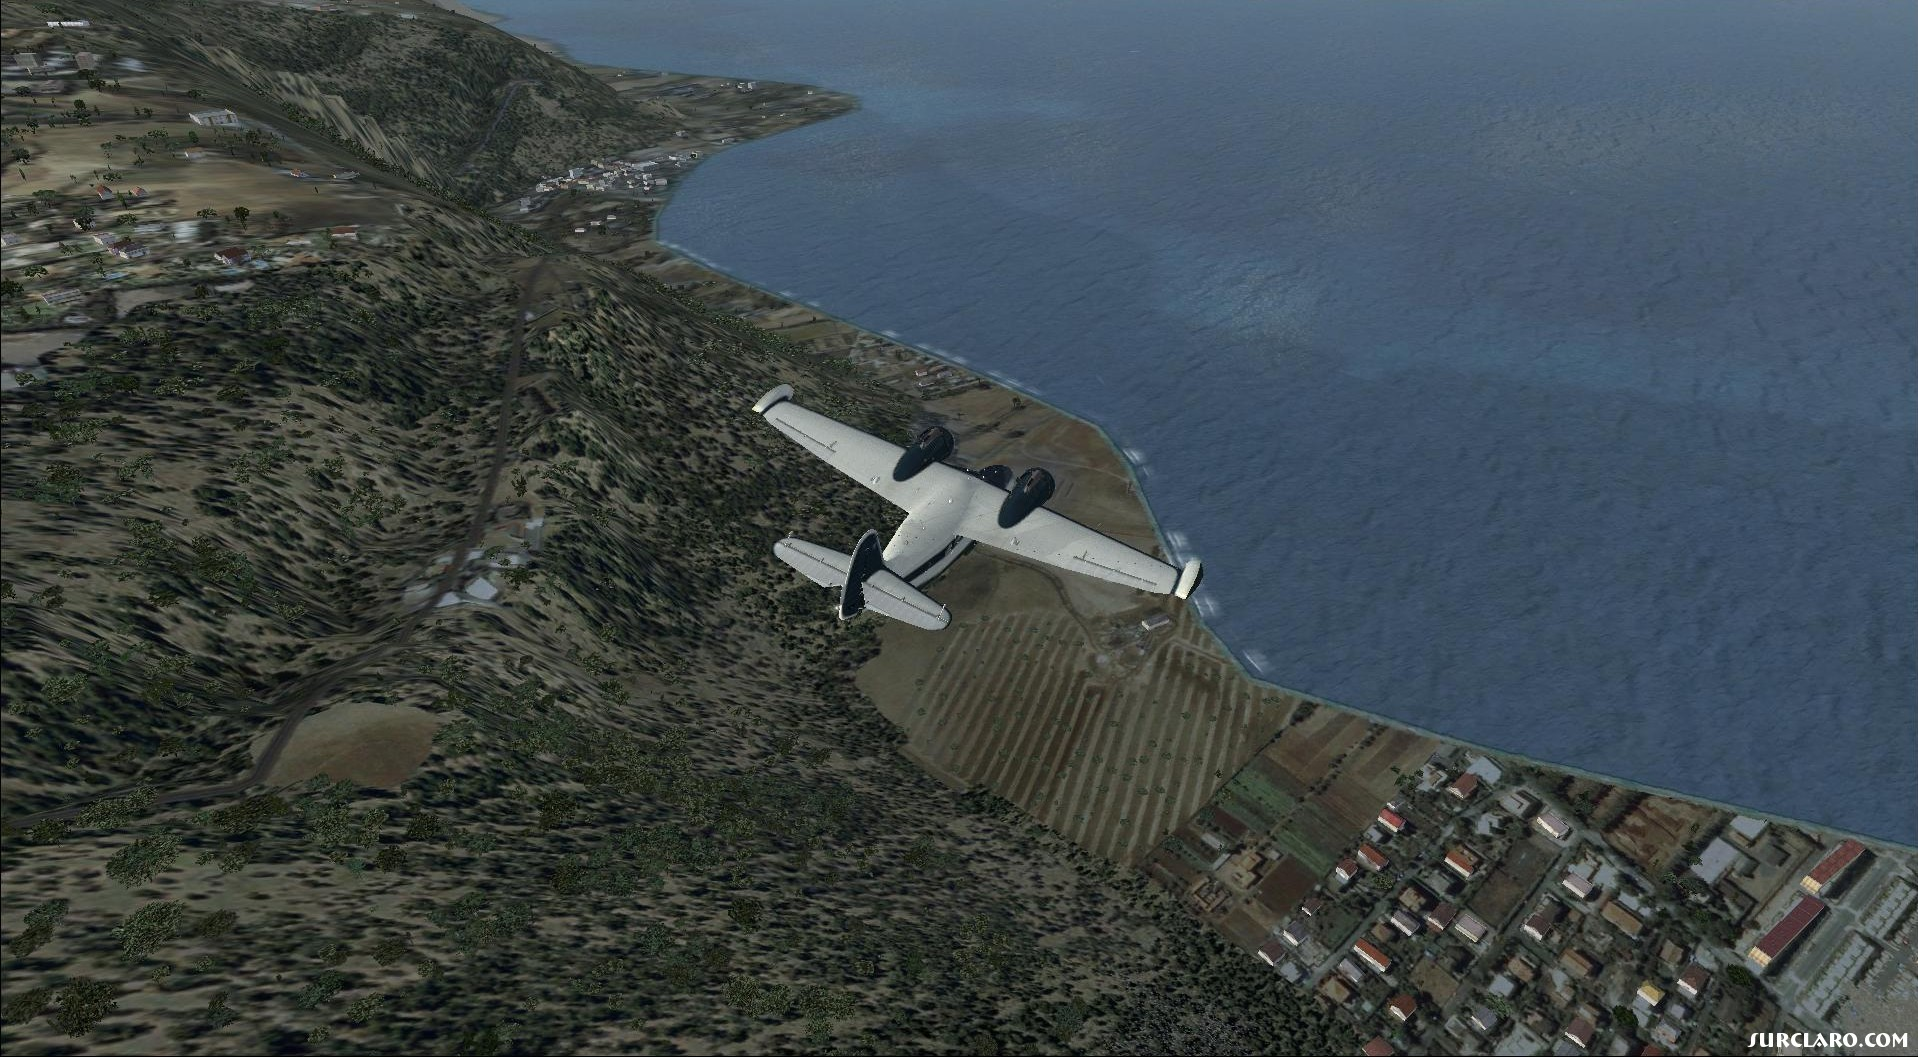 Grumman Goose short hop from Barilles airport to Tocopilla Chile waterfront part 2 - Photo 18140